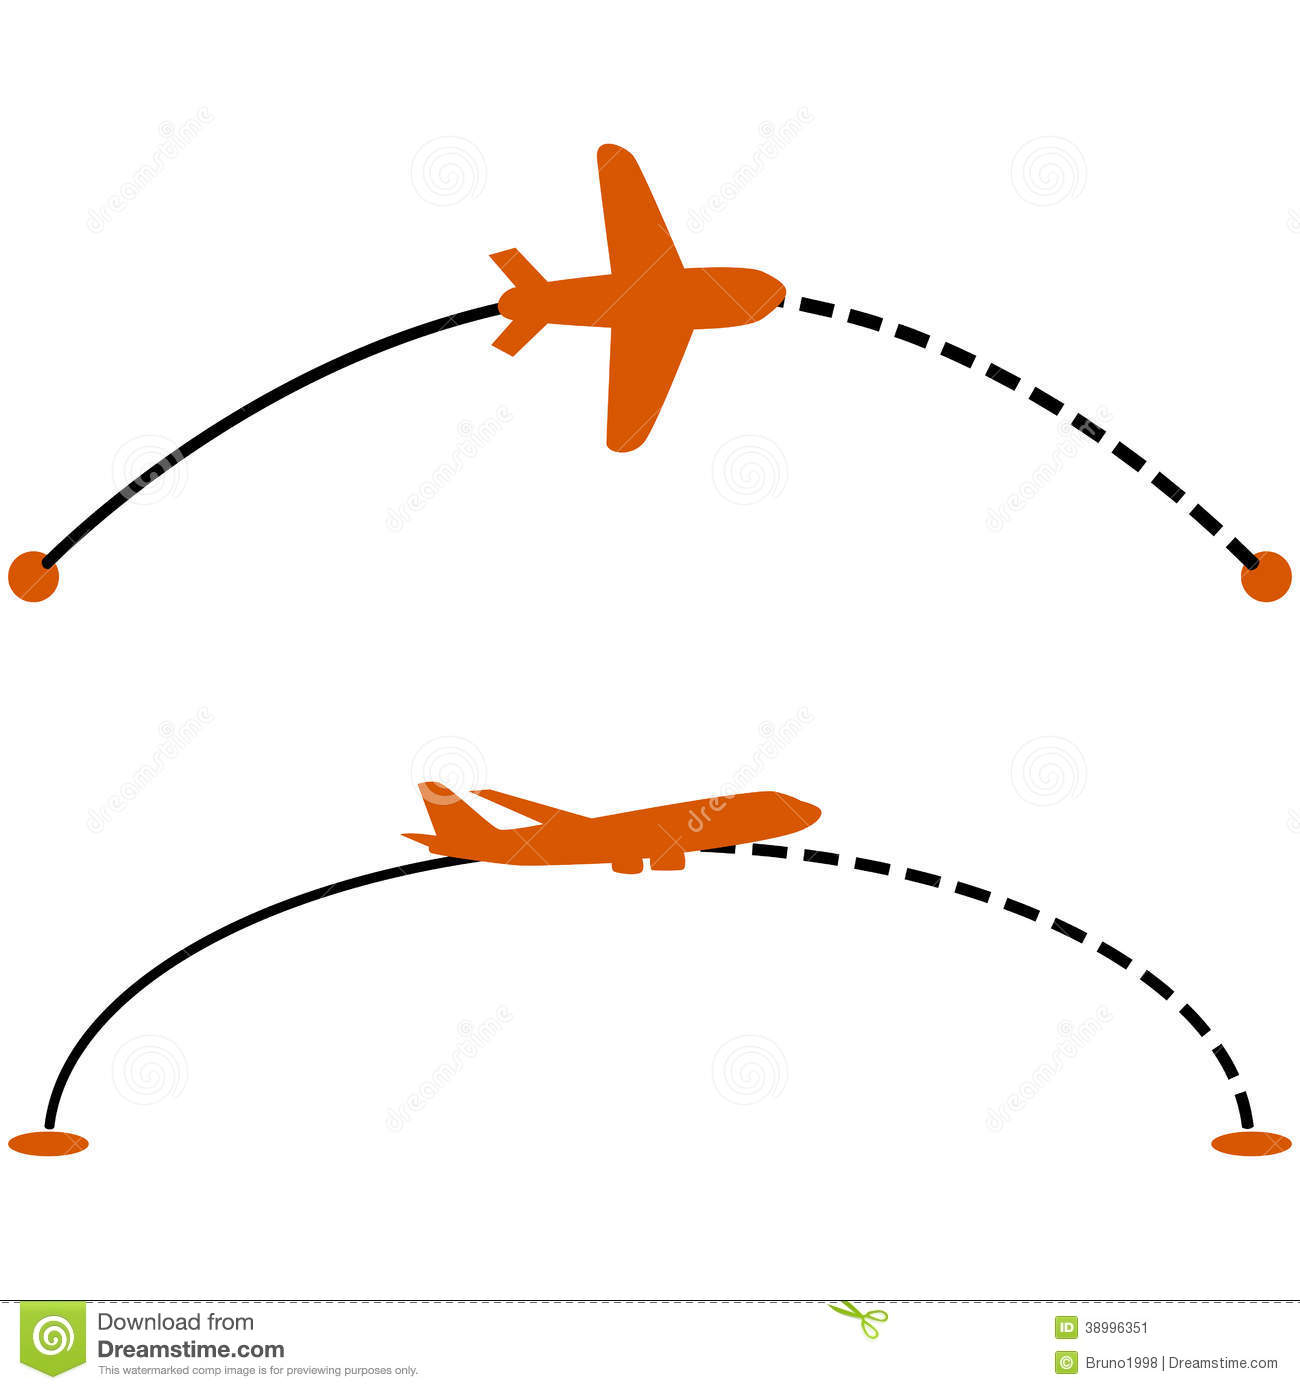 Plane Route Stock Vector. Illustration Of Dashed, Movement